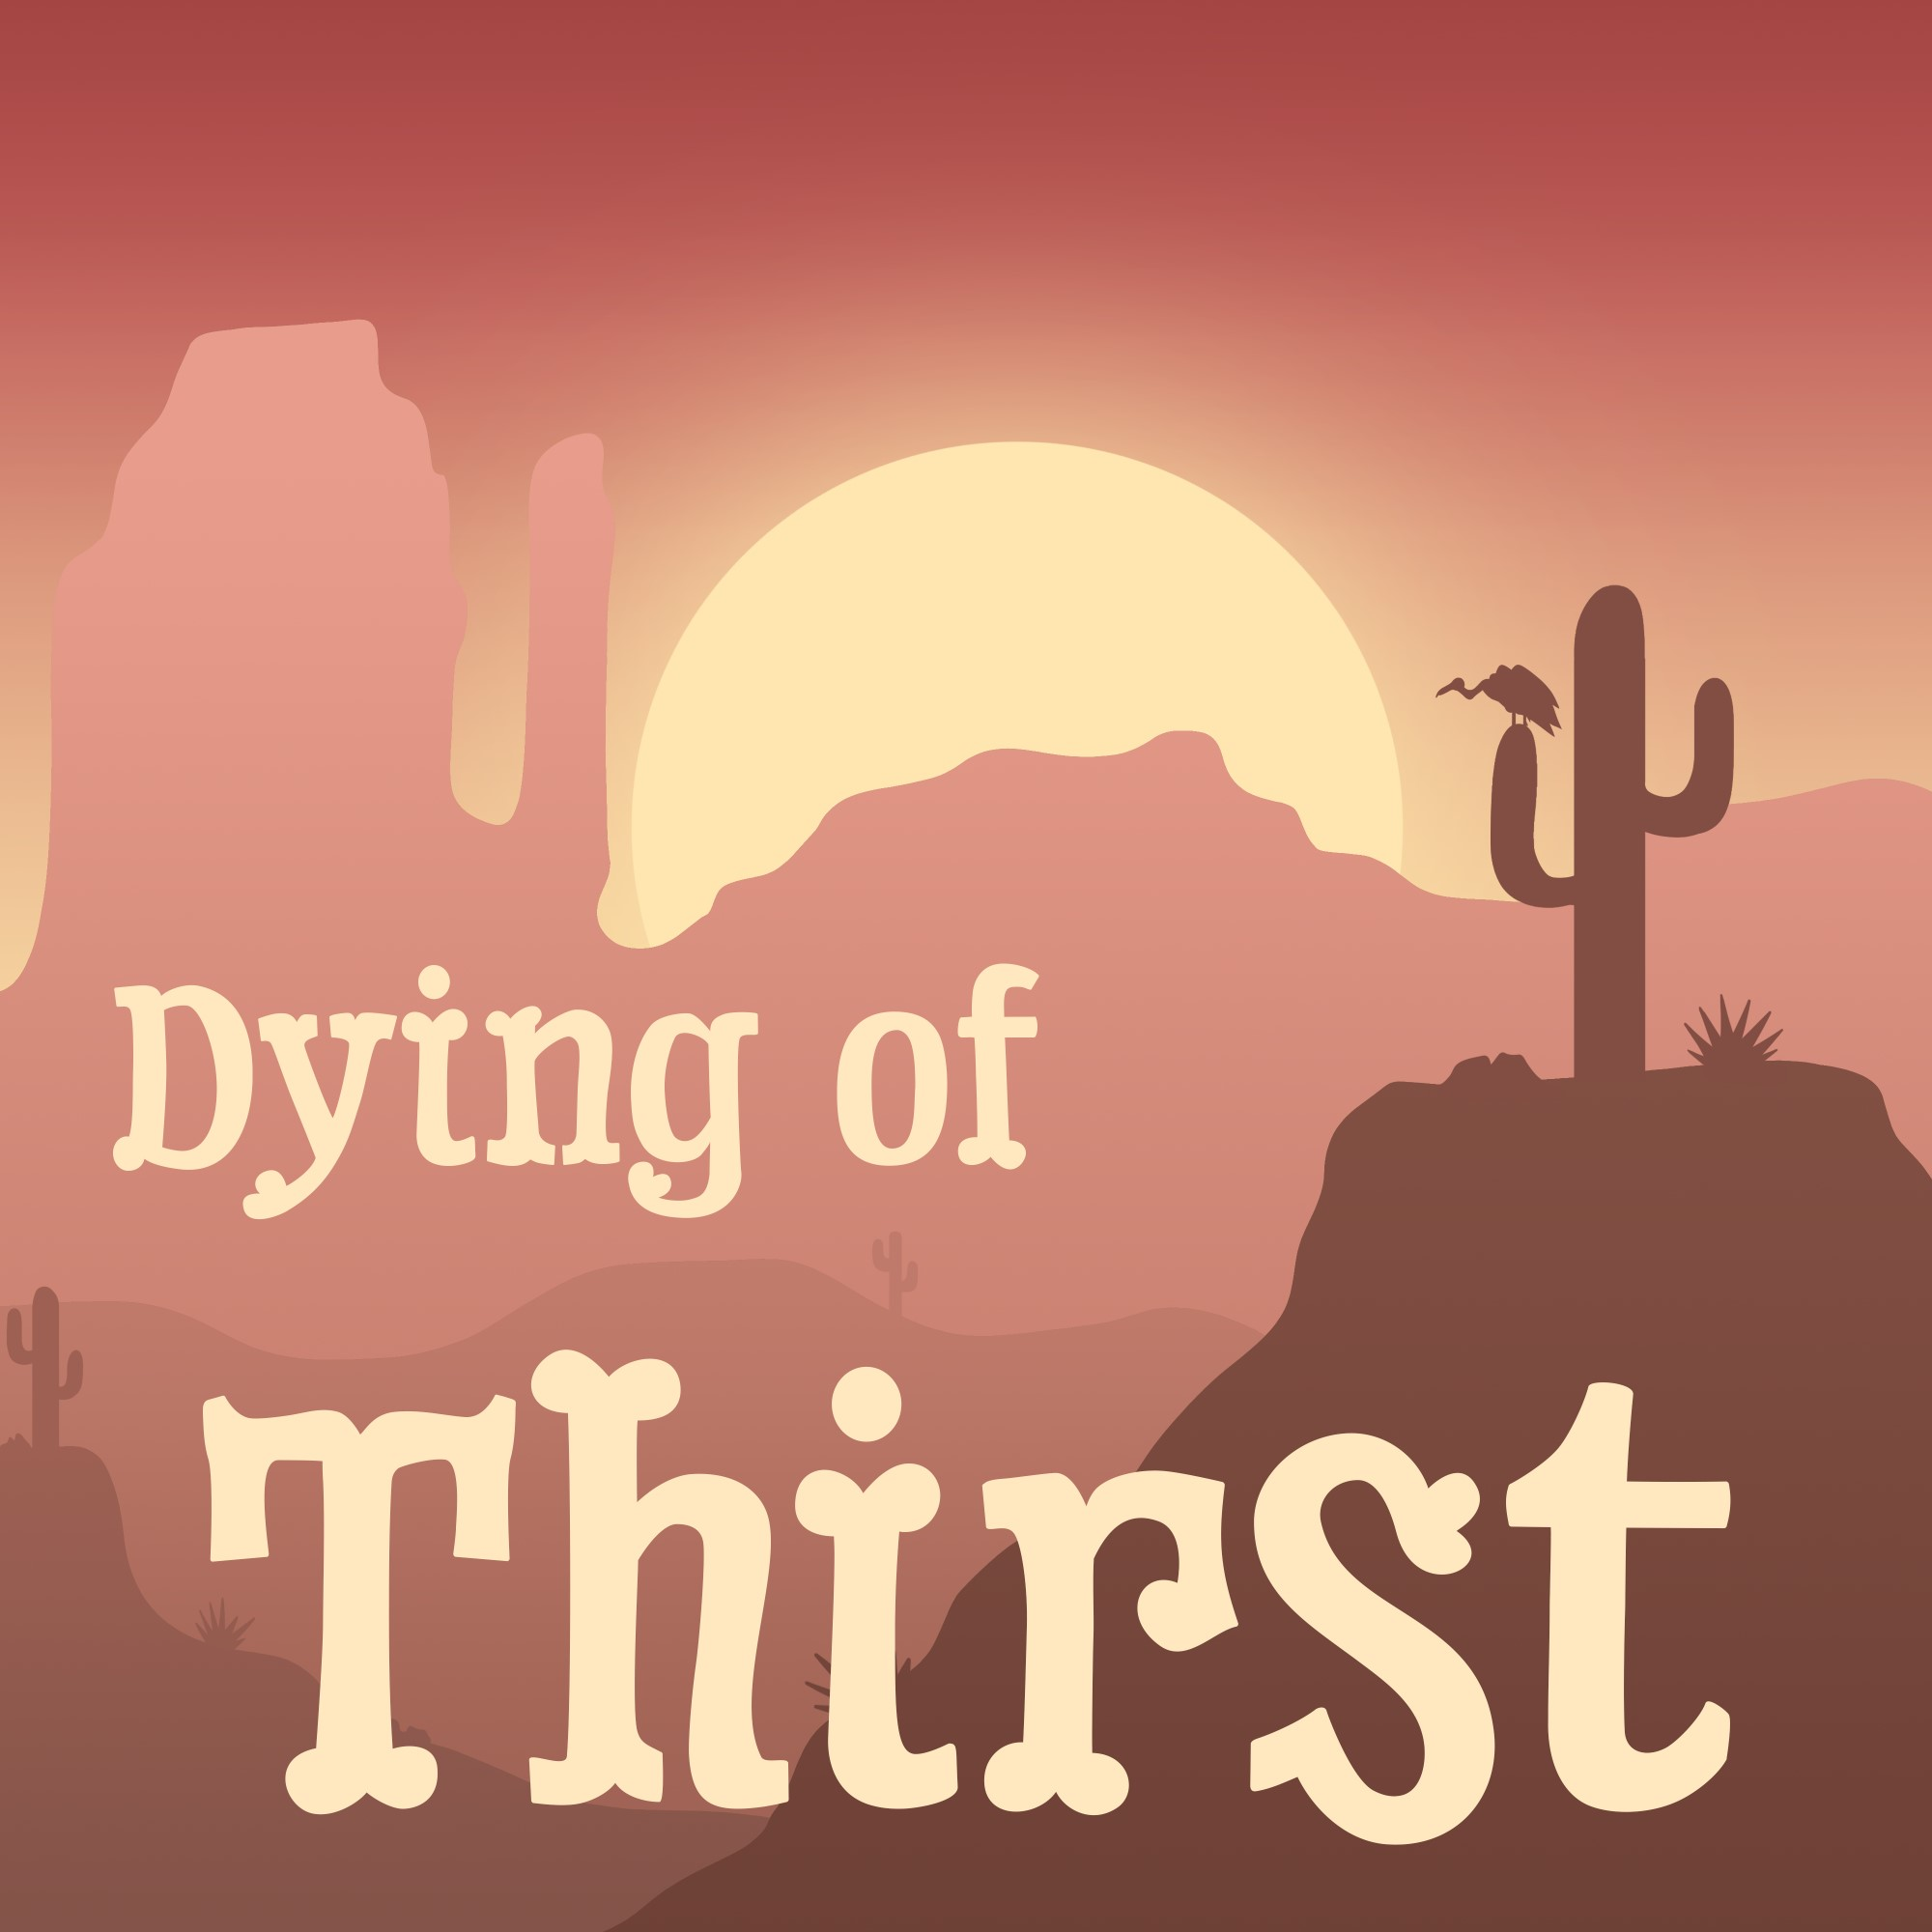 Artwork for podcast Dying of Thirst